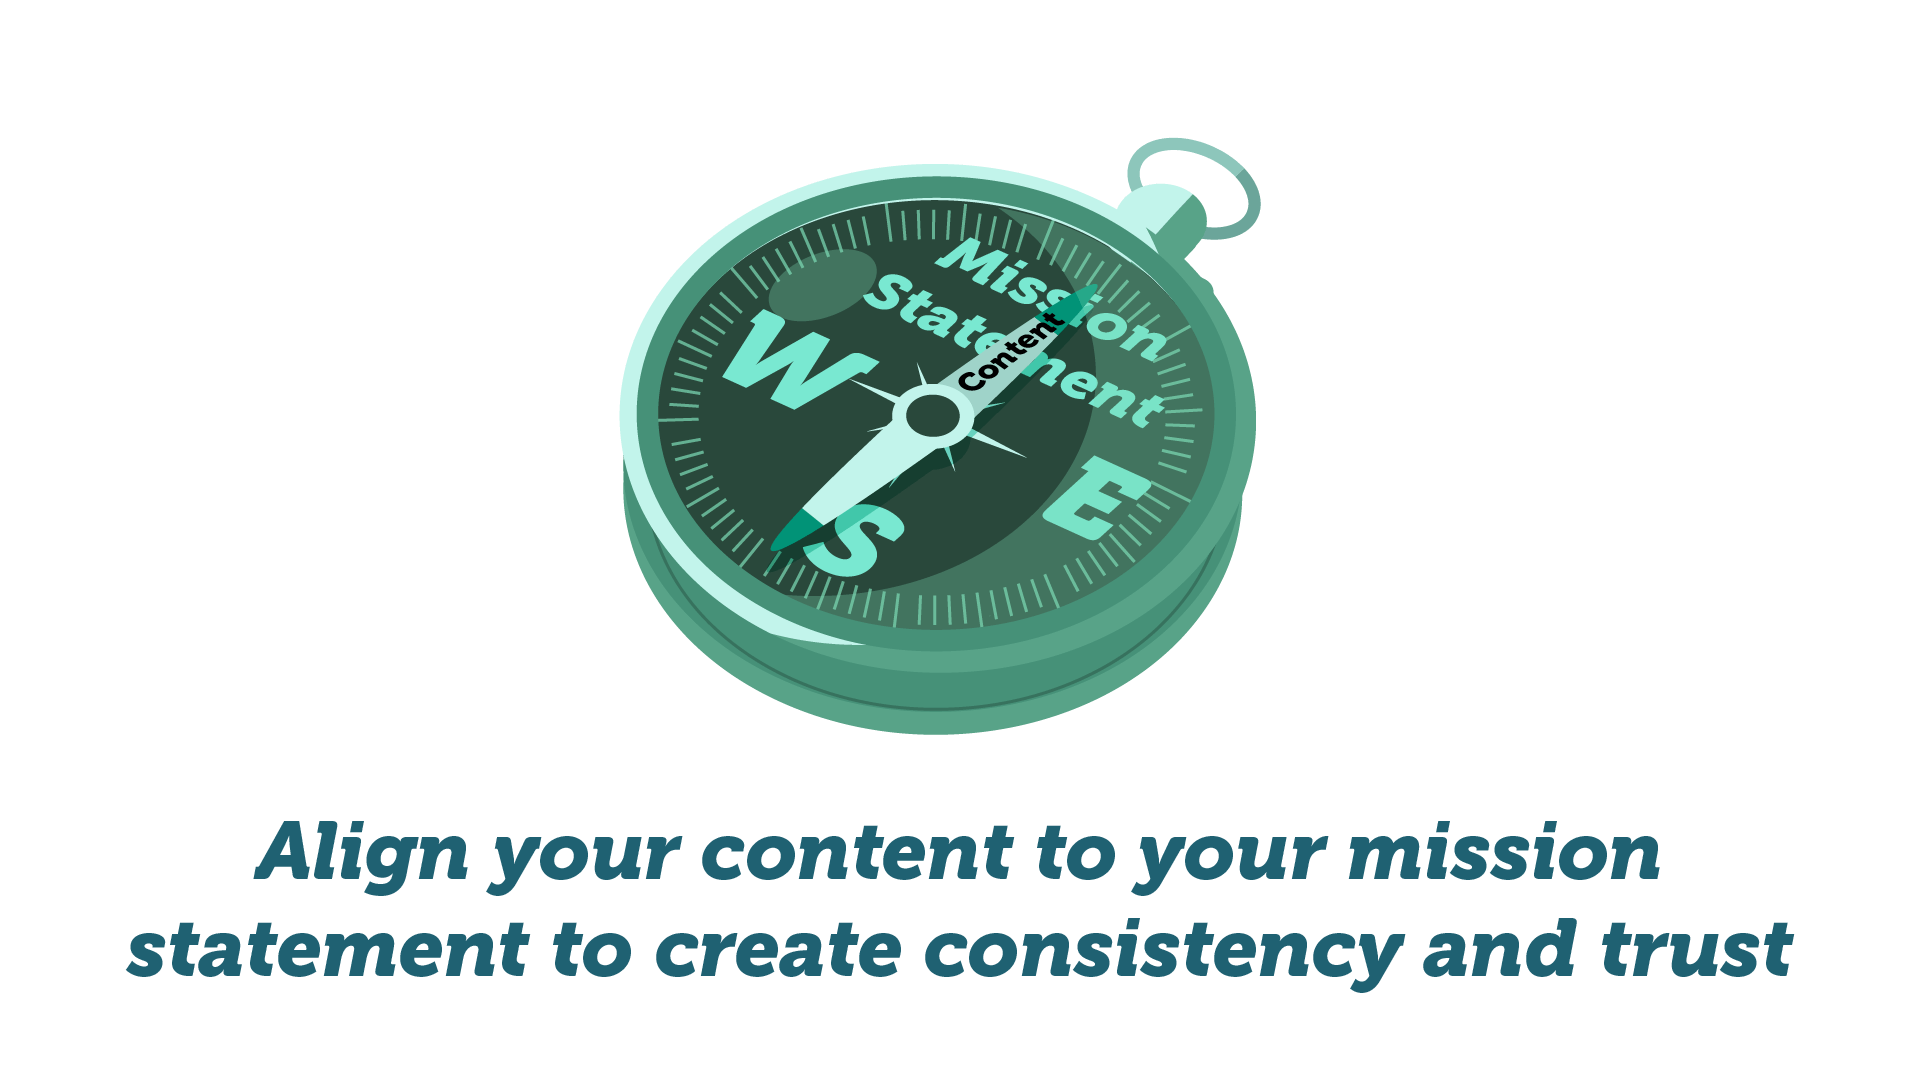 Compass, align your content